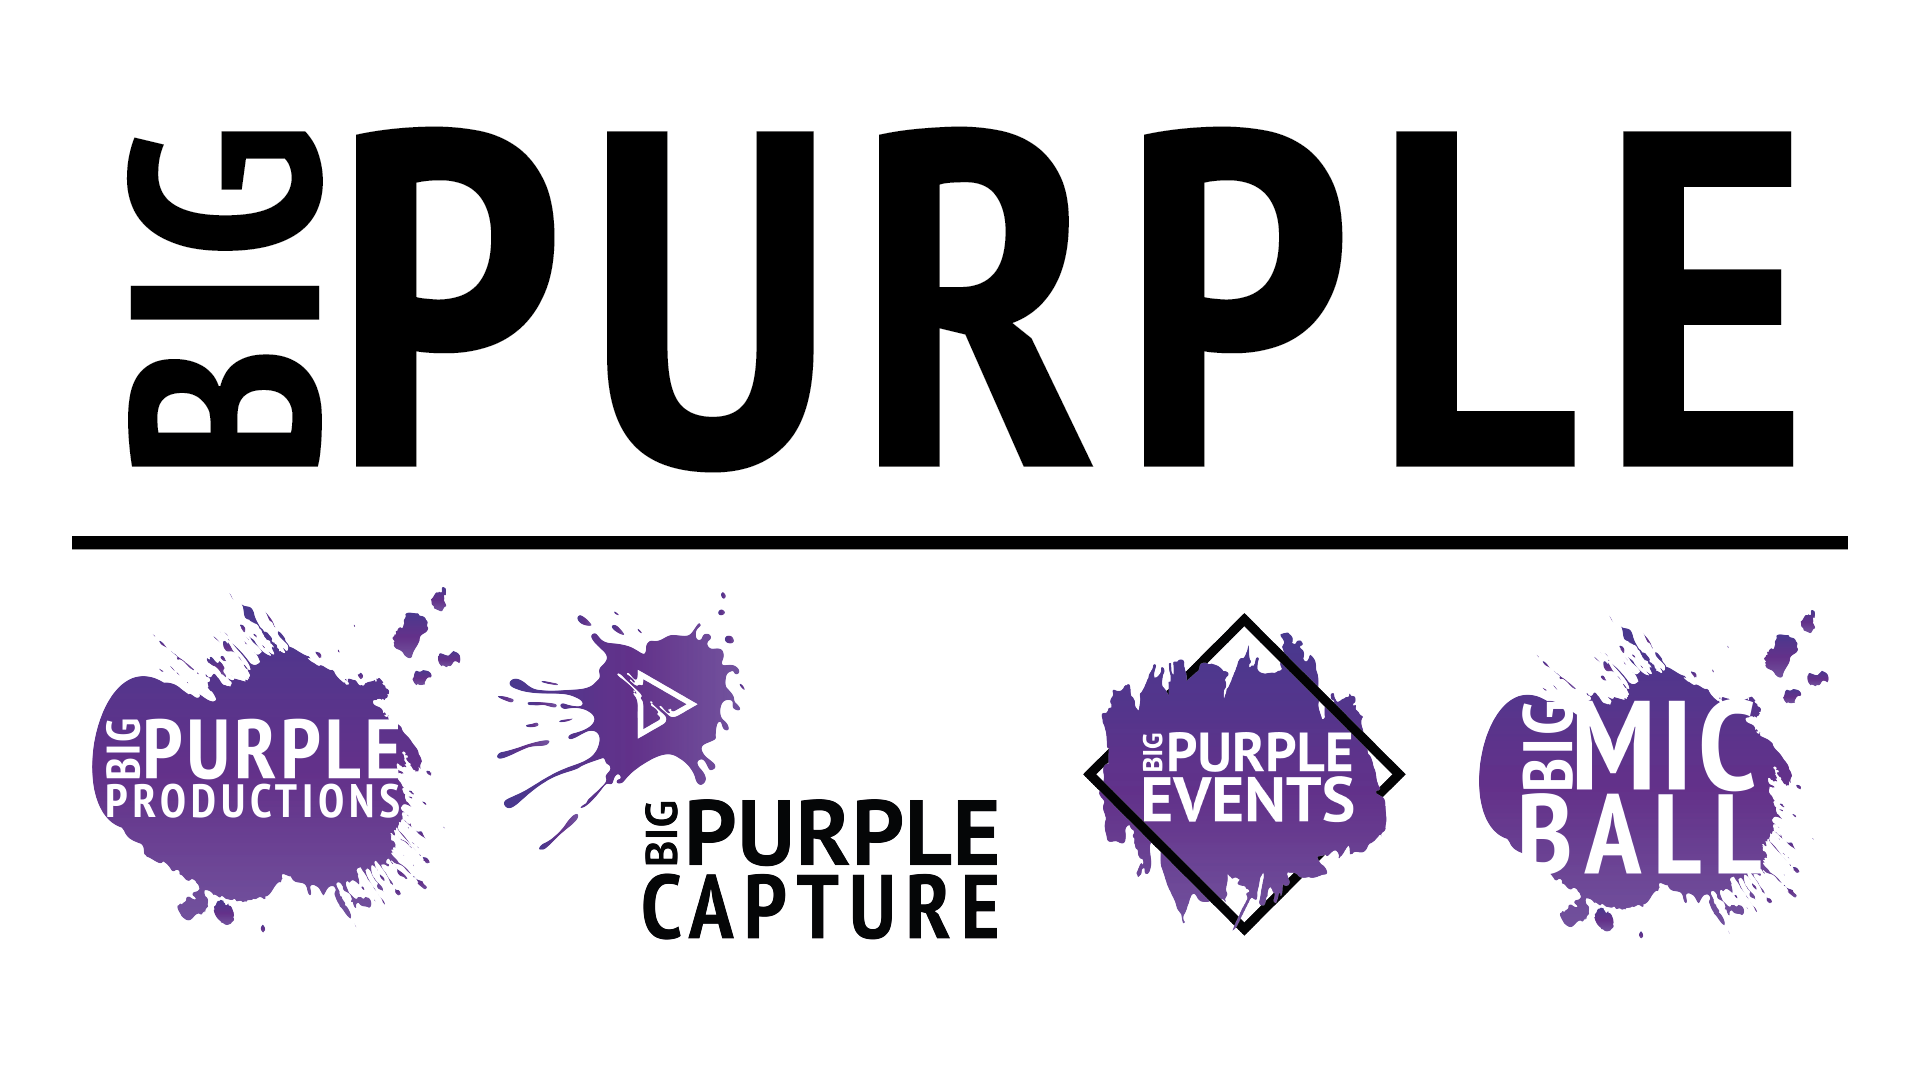 Big Purple Production